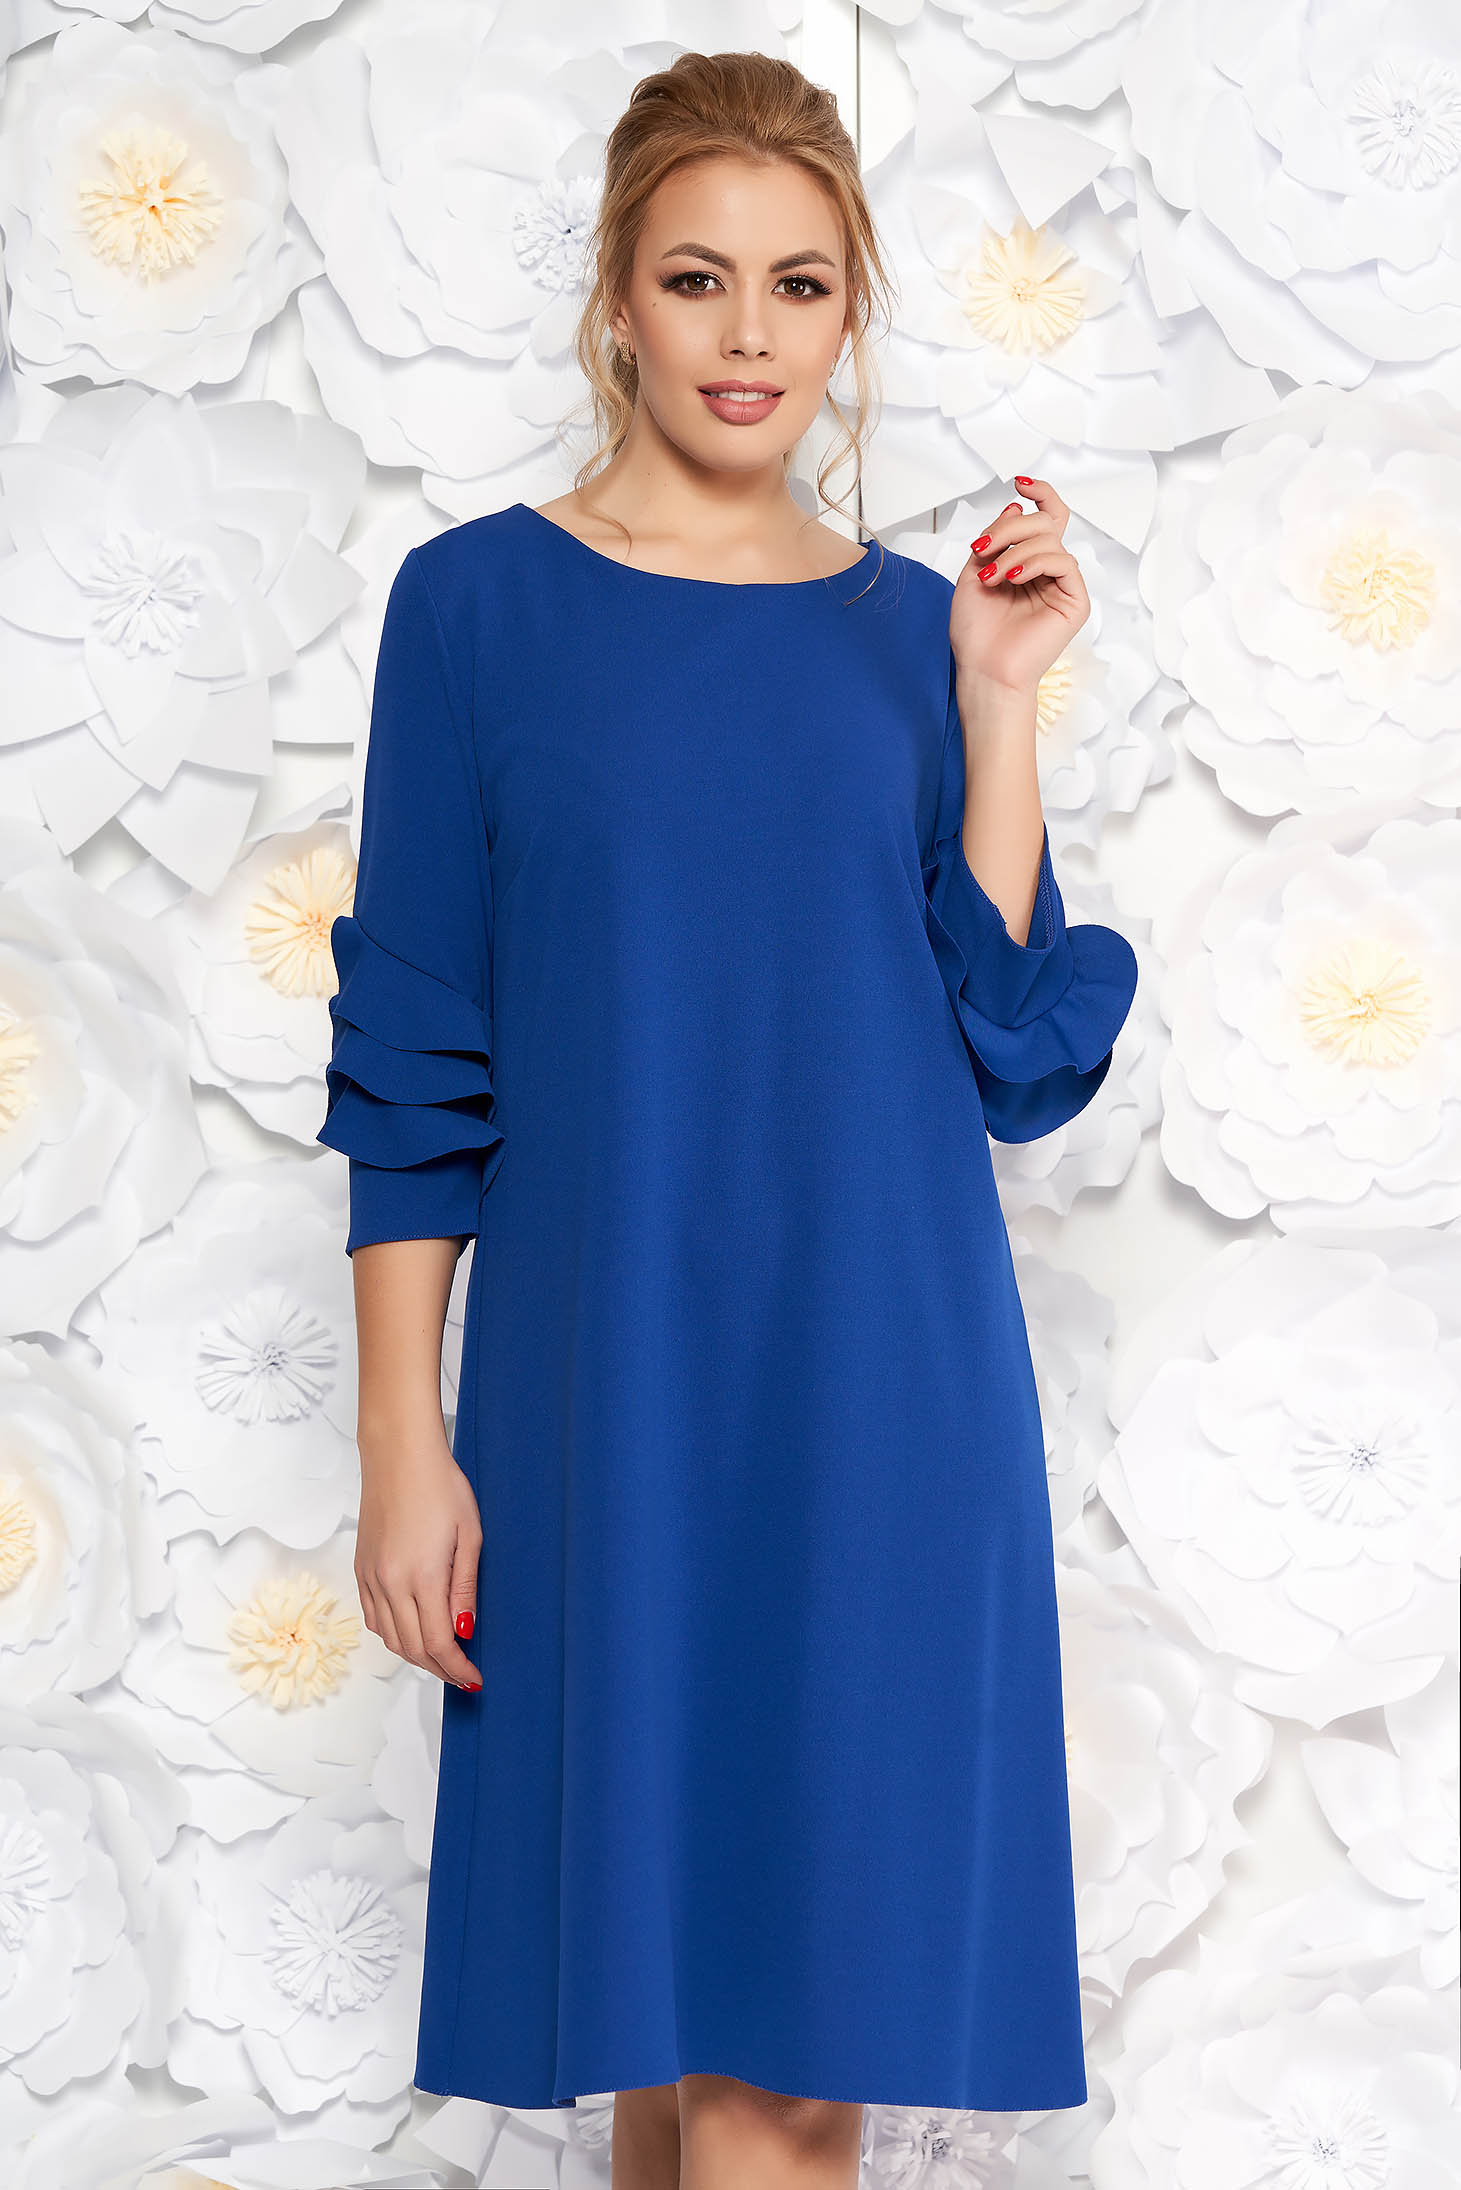 Blue elegant flared dress slightly elastic fabric with ruffled sleeves